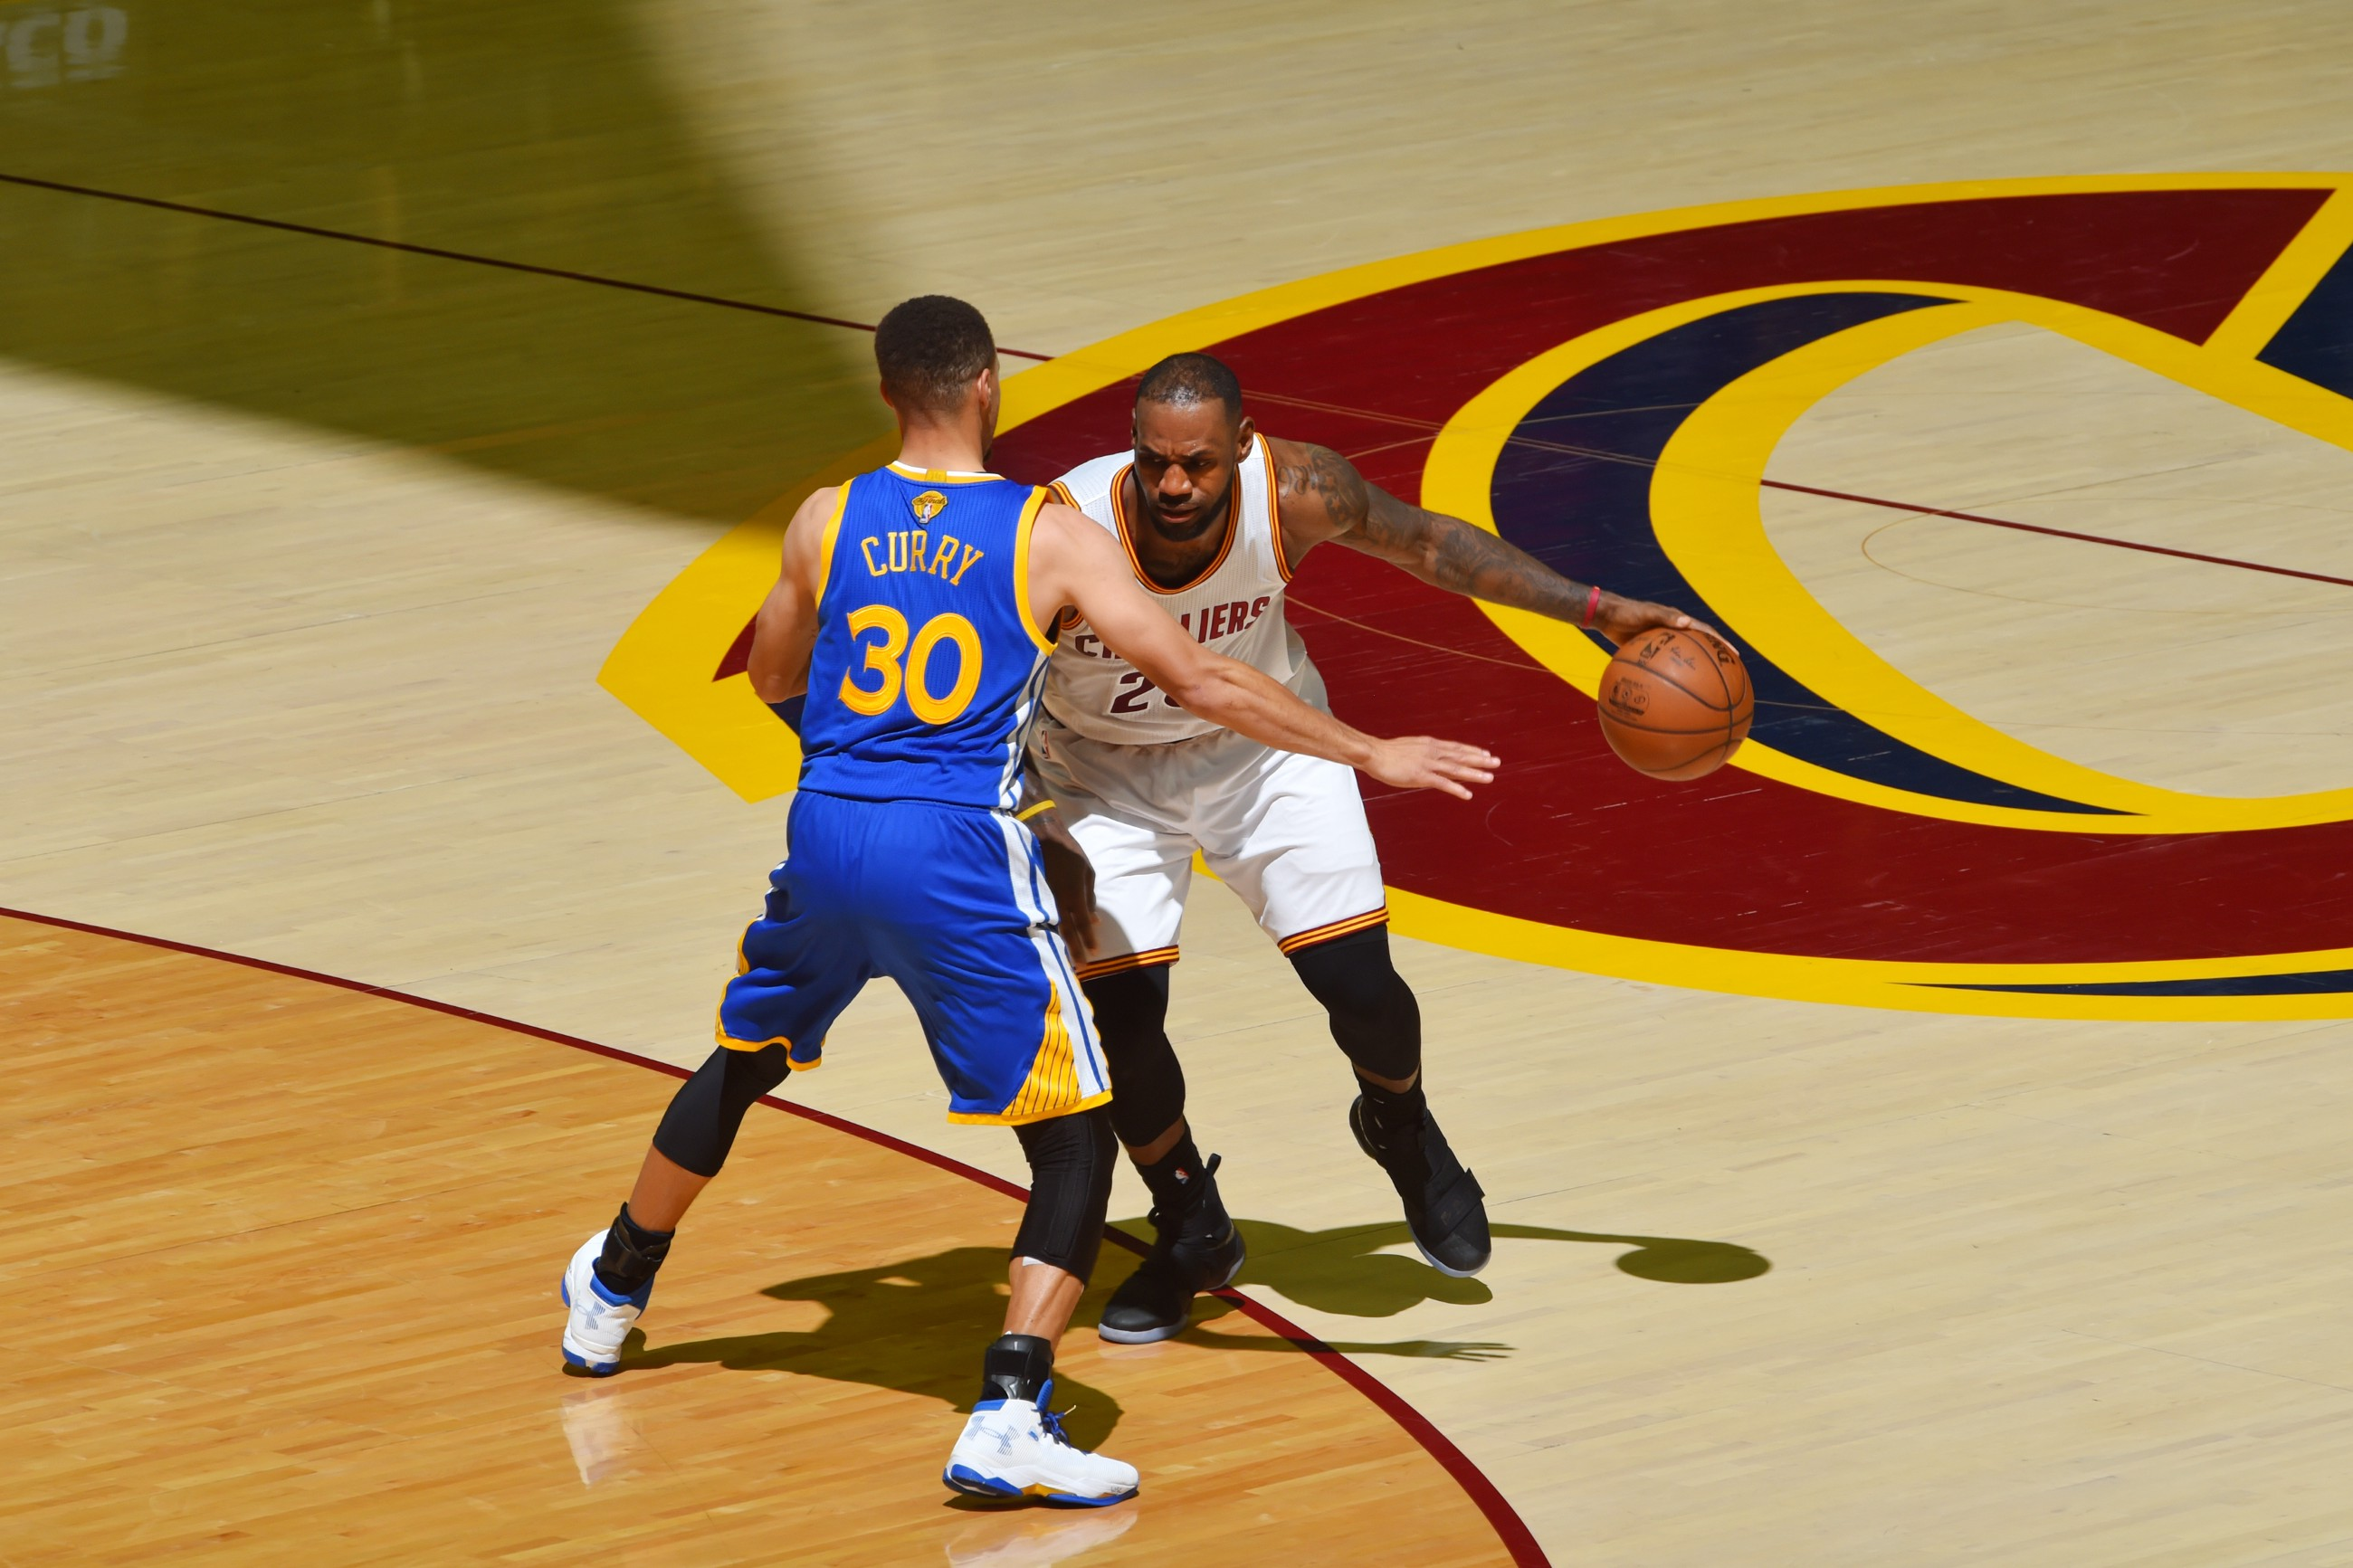 online store 6aa4c fe5c5 Despite The Noise, Stephen Curry Is Not An Underdog